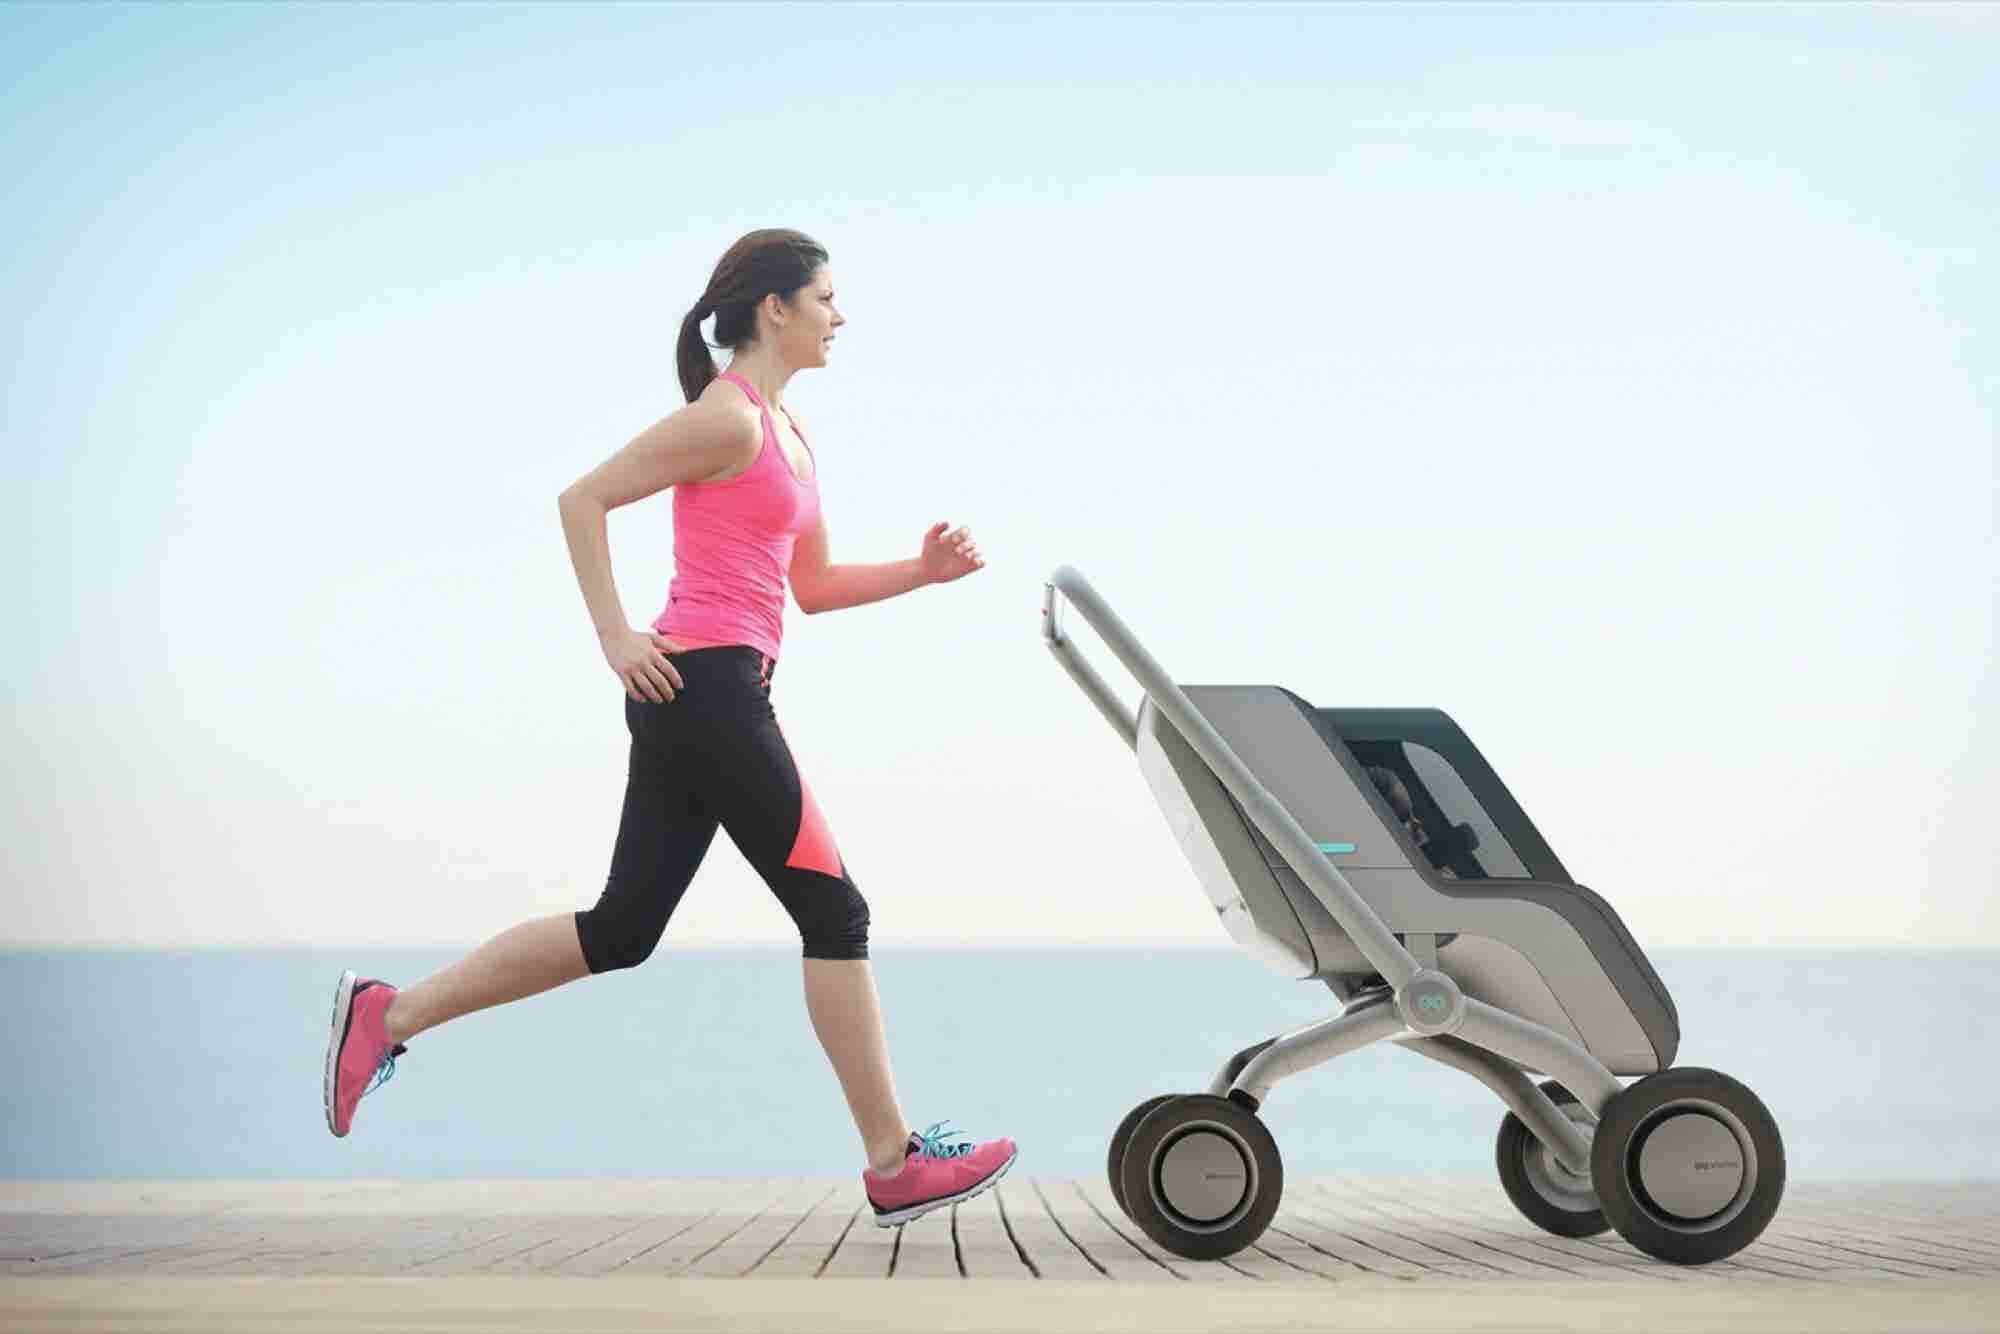 A 'Self-Propelling' Stroller Just Launched on Indiegogo